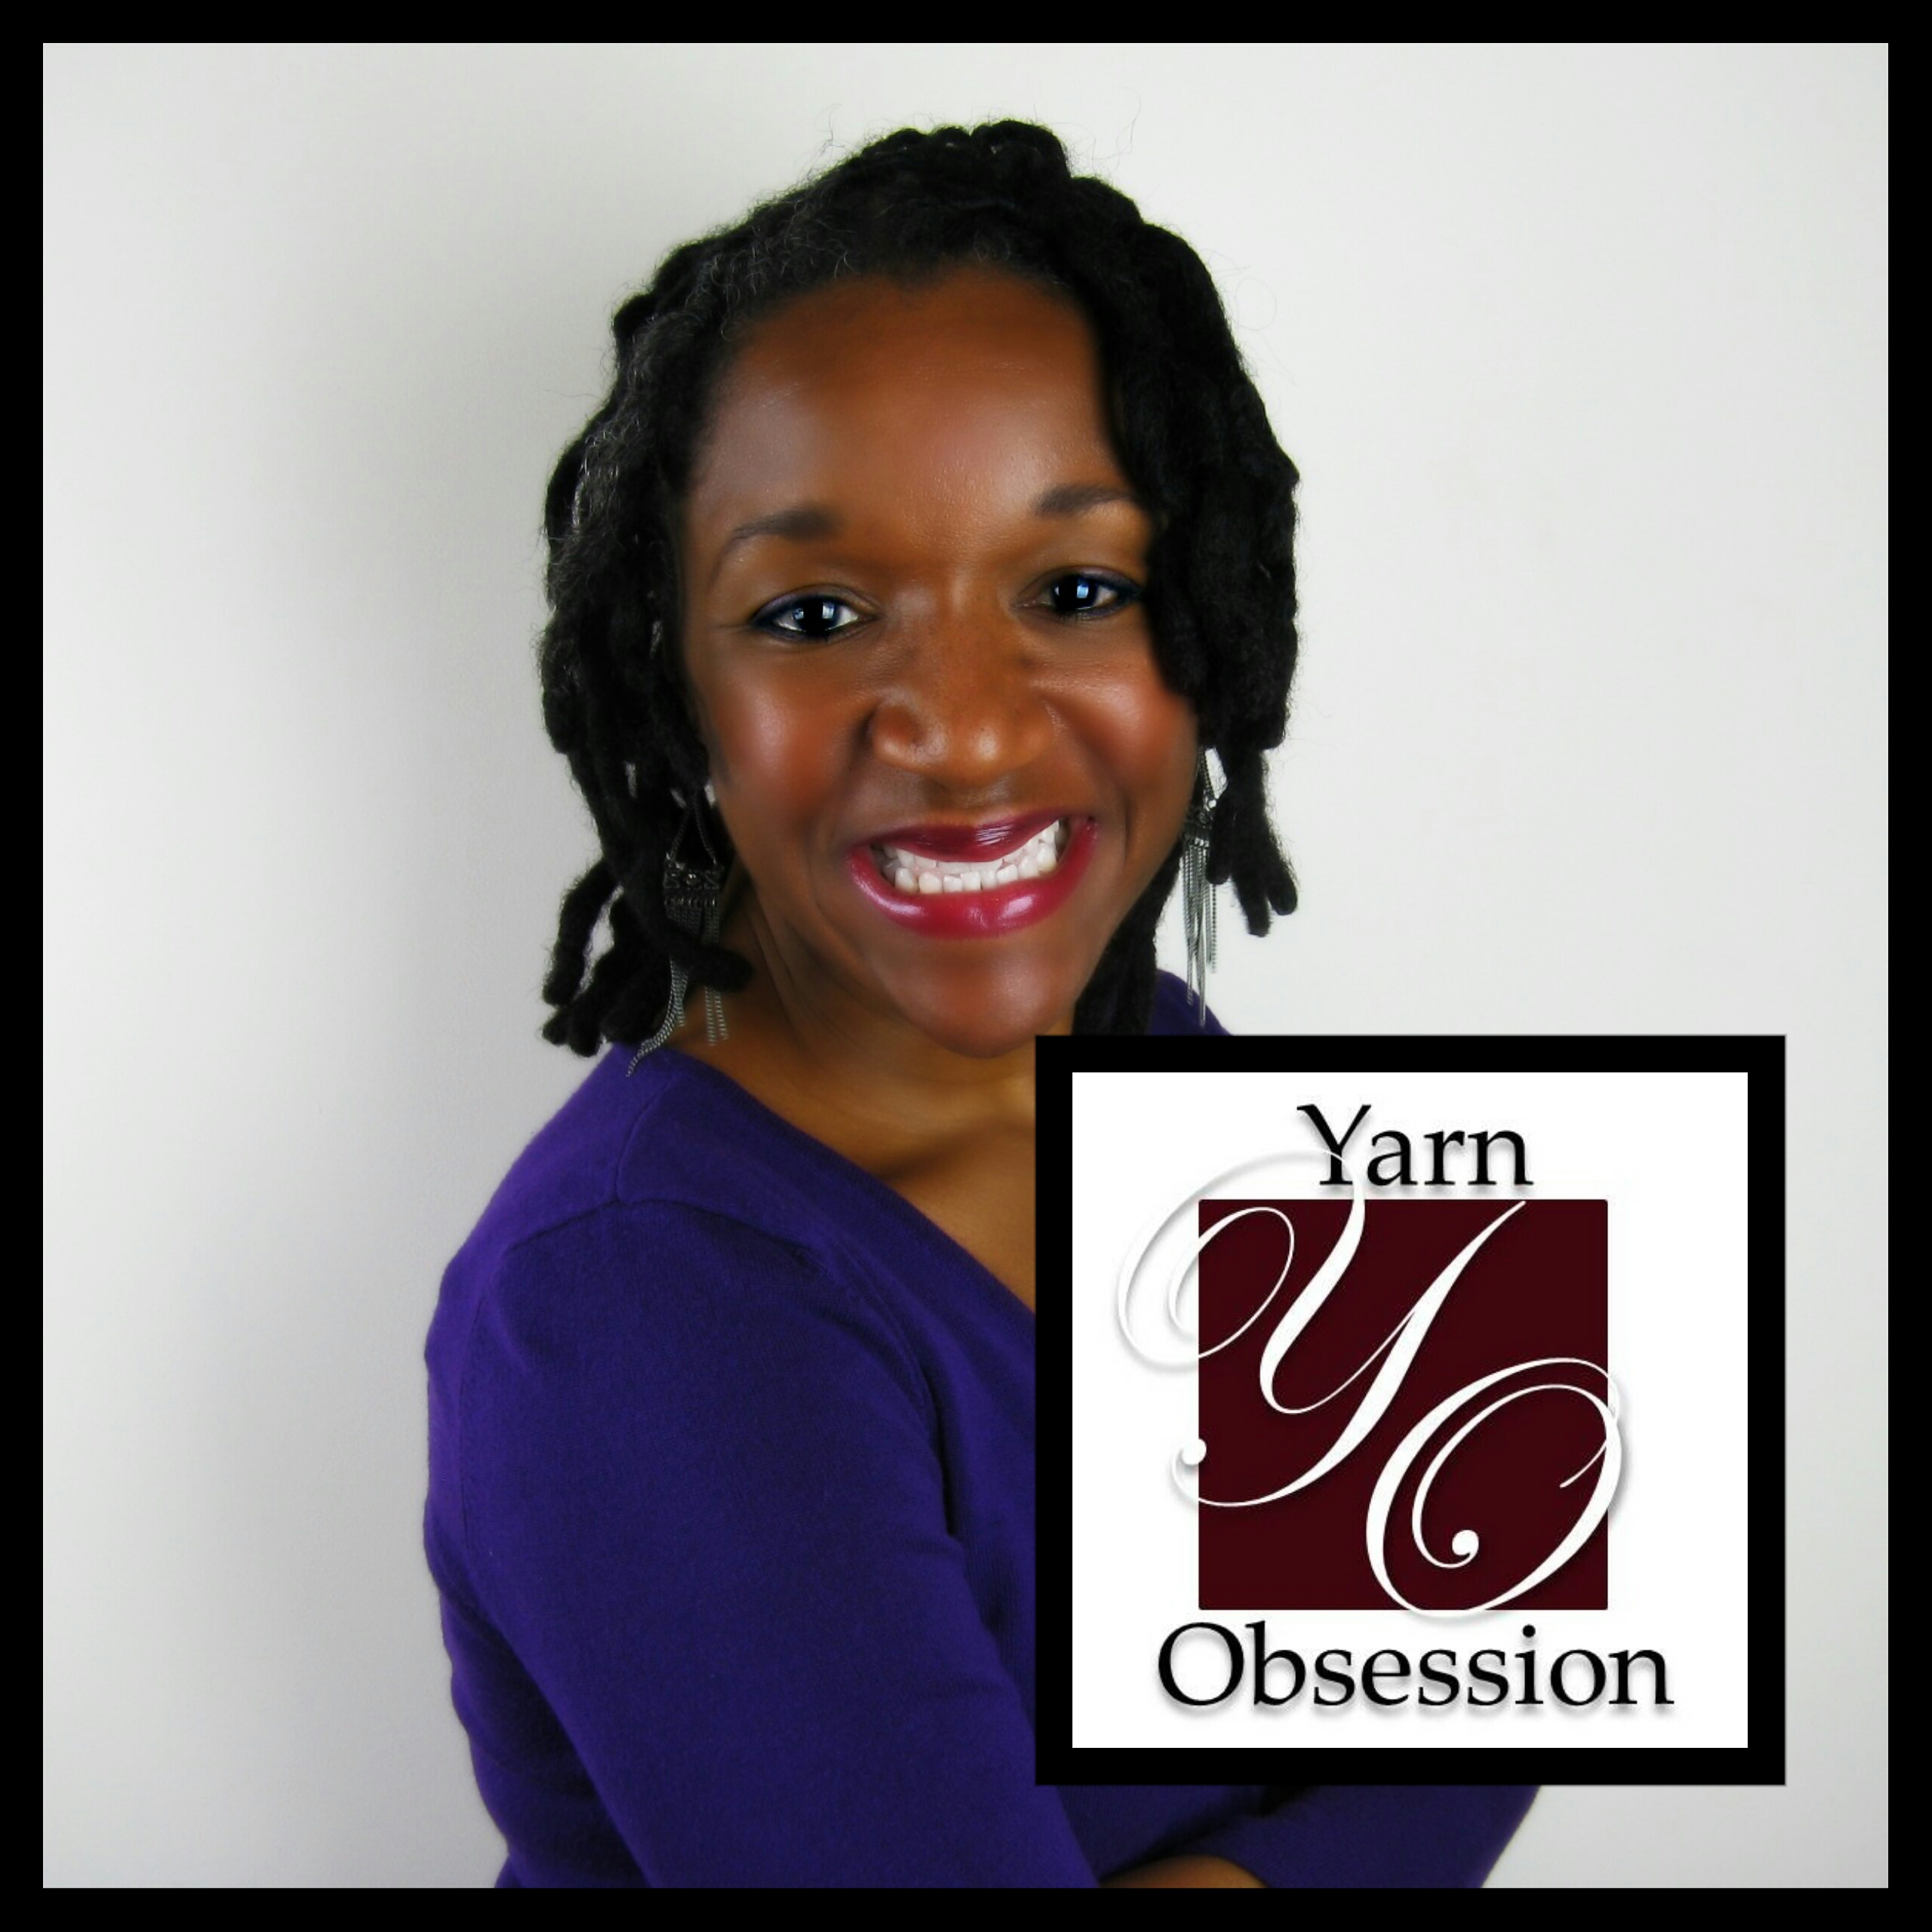 Crochet Design Series - Yarn Obsession